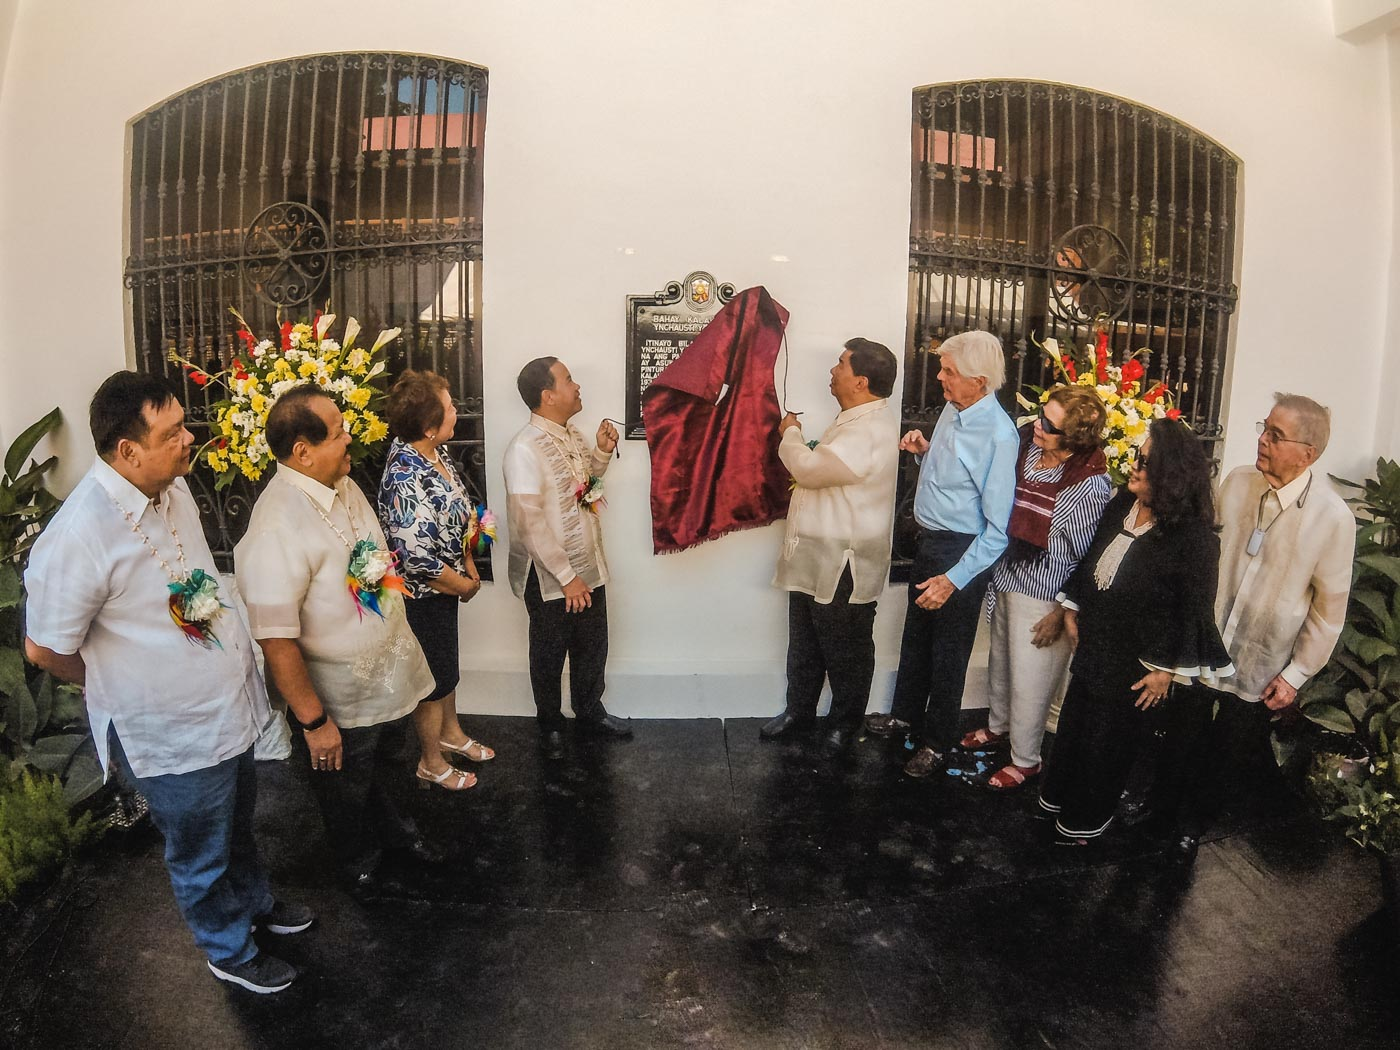 LANDMARK. NHCP Chairman Rene Escalante (4-L) and Senator Franklin Drilon (5-L) unveil the historical marker of the museum, along with other officials. All photos by Carl Don Berwin/Rappler